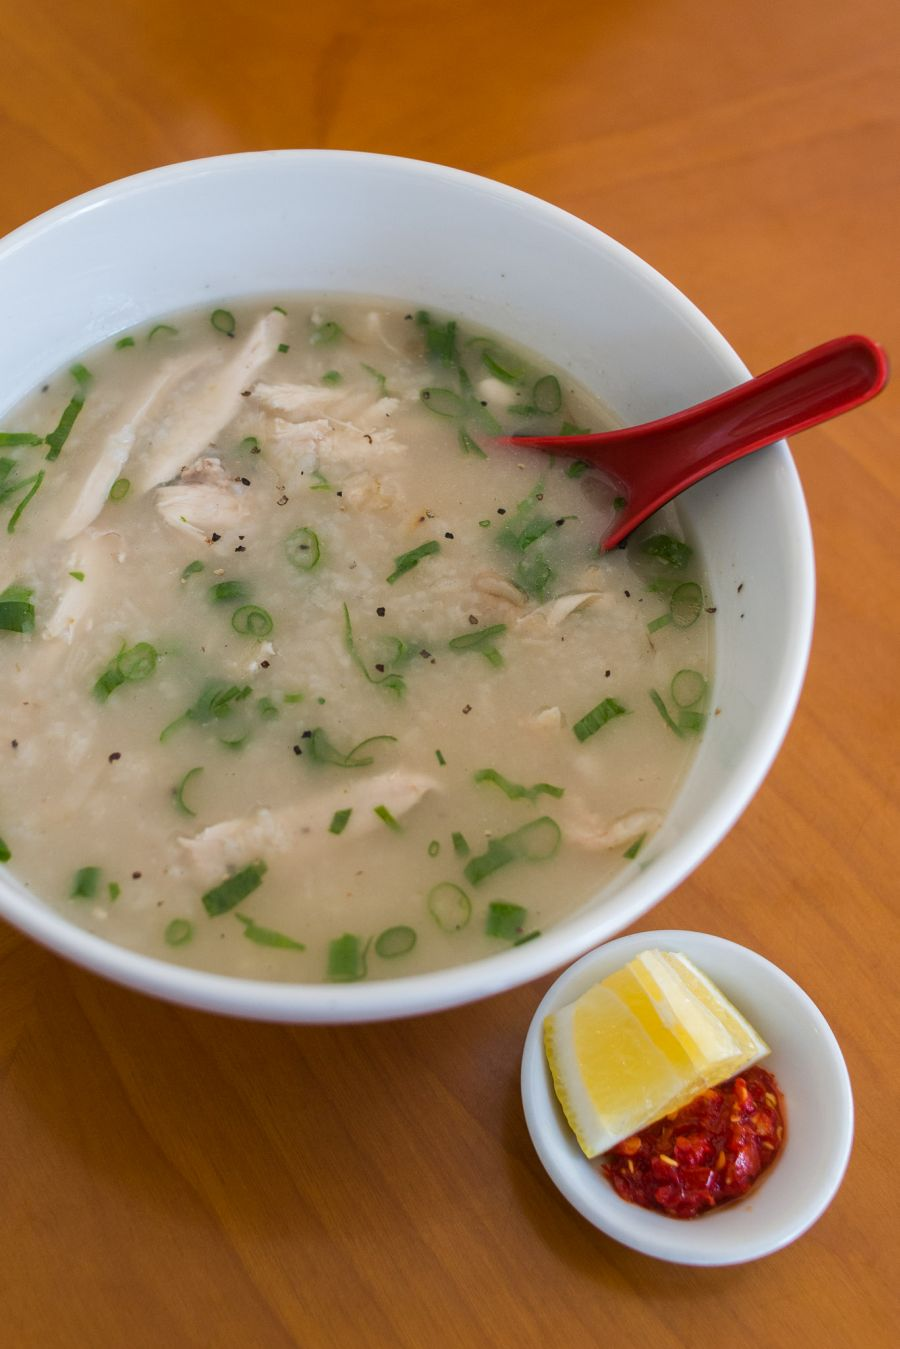 Chao ga - chicken porridge (AU$12)